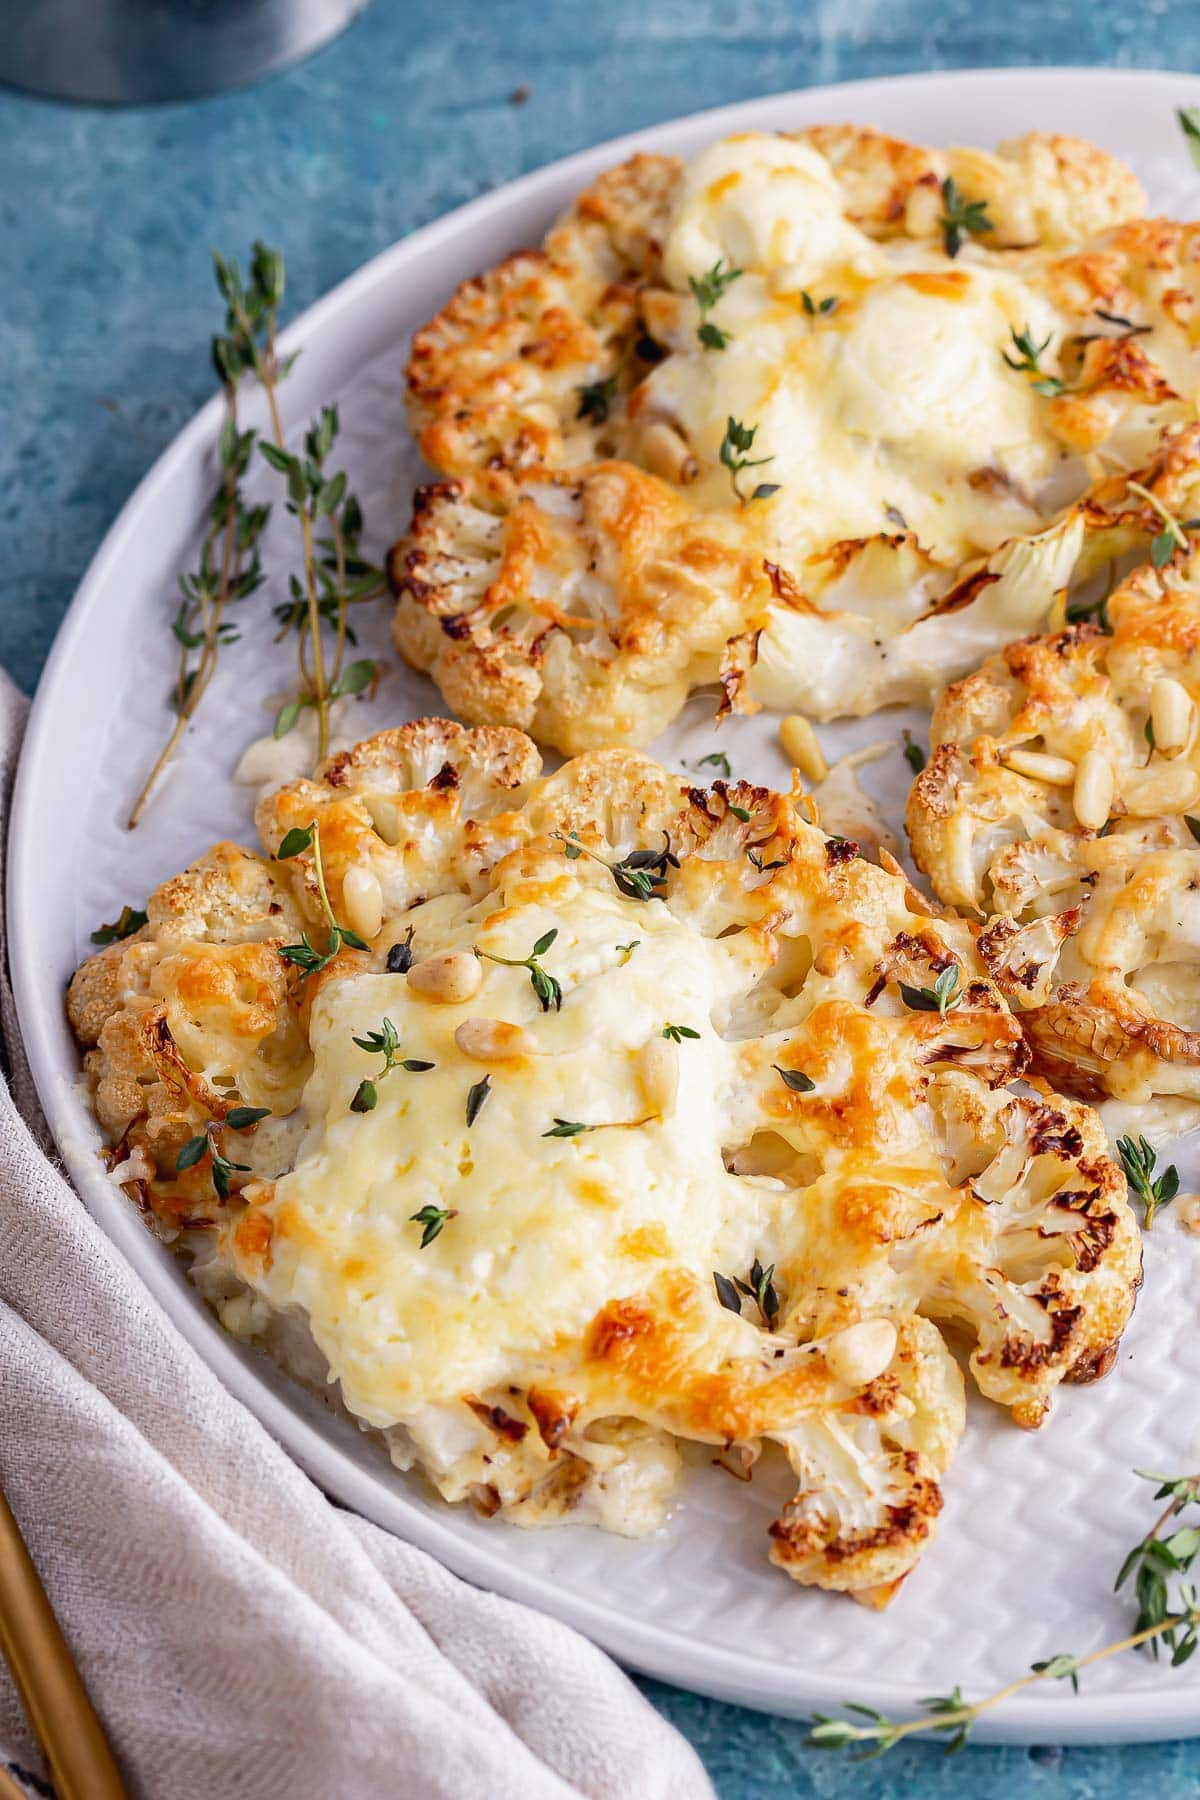 Plate of cheesy cauliflower with thyme on a grey plate